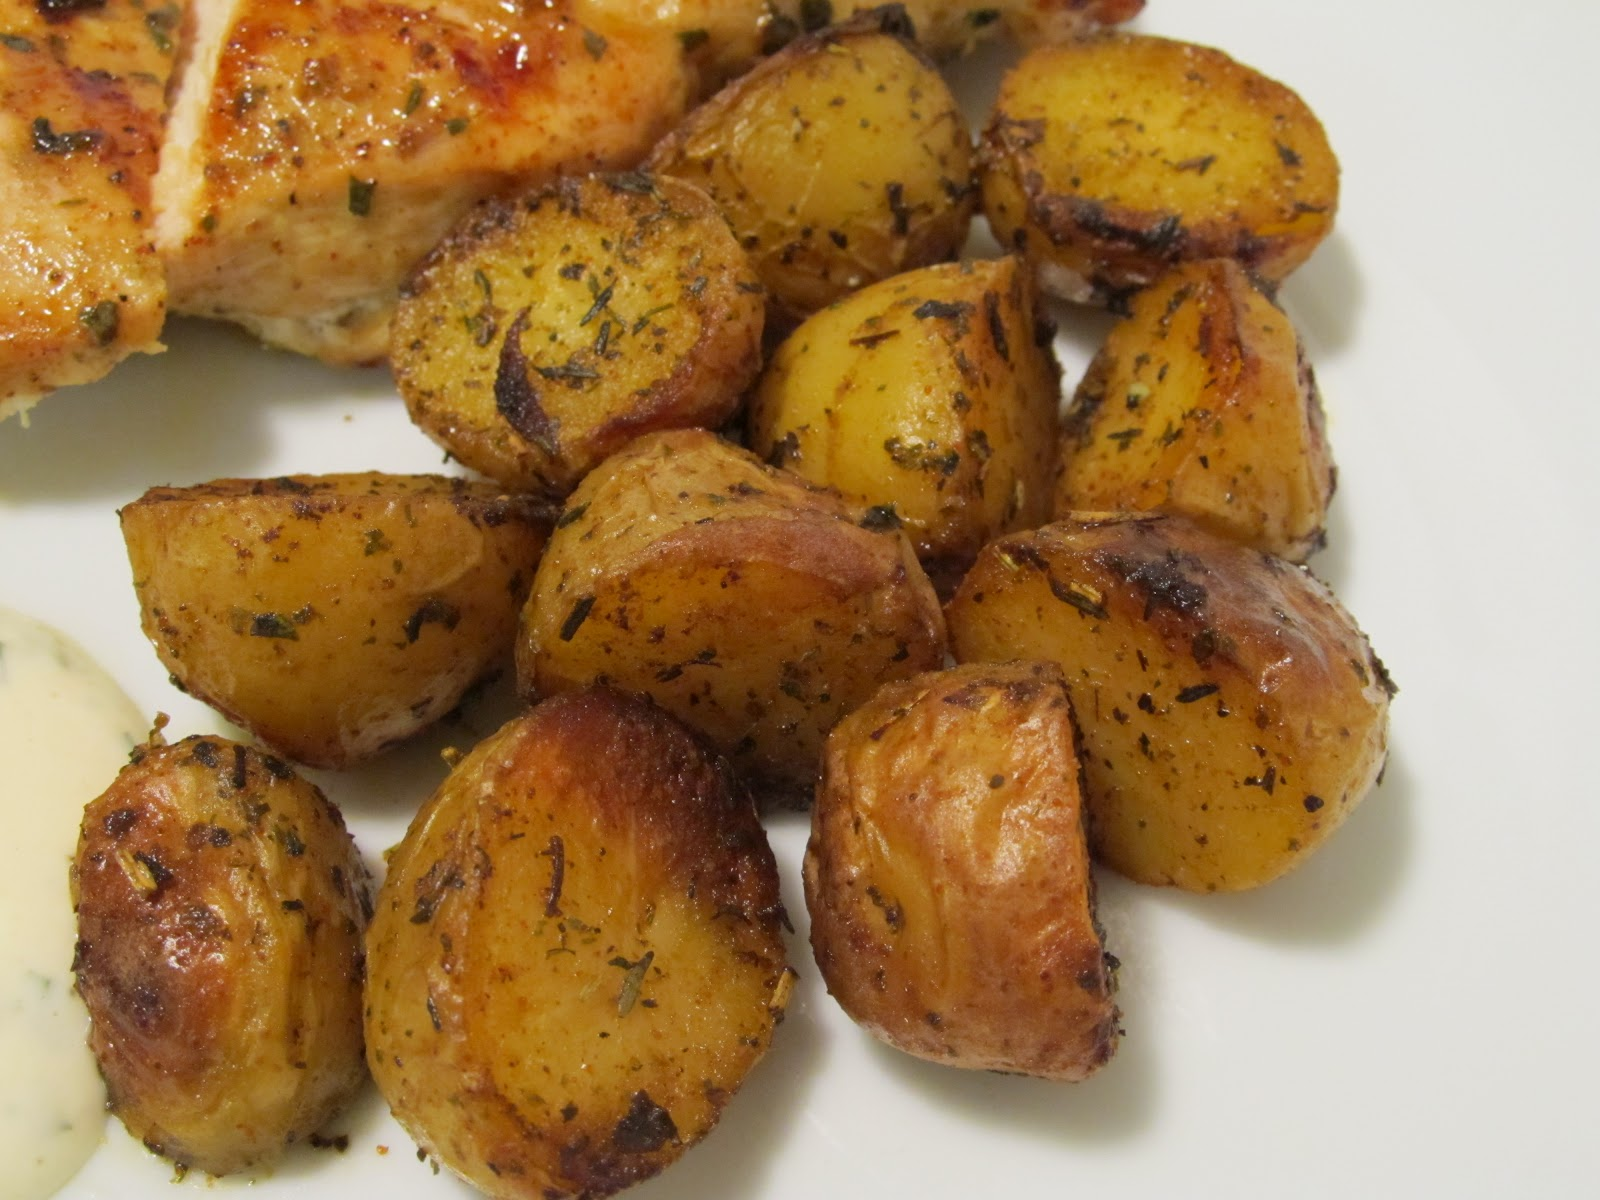 Jenn's Food Journey: Herby Grilled Potatoes